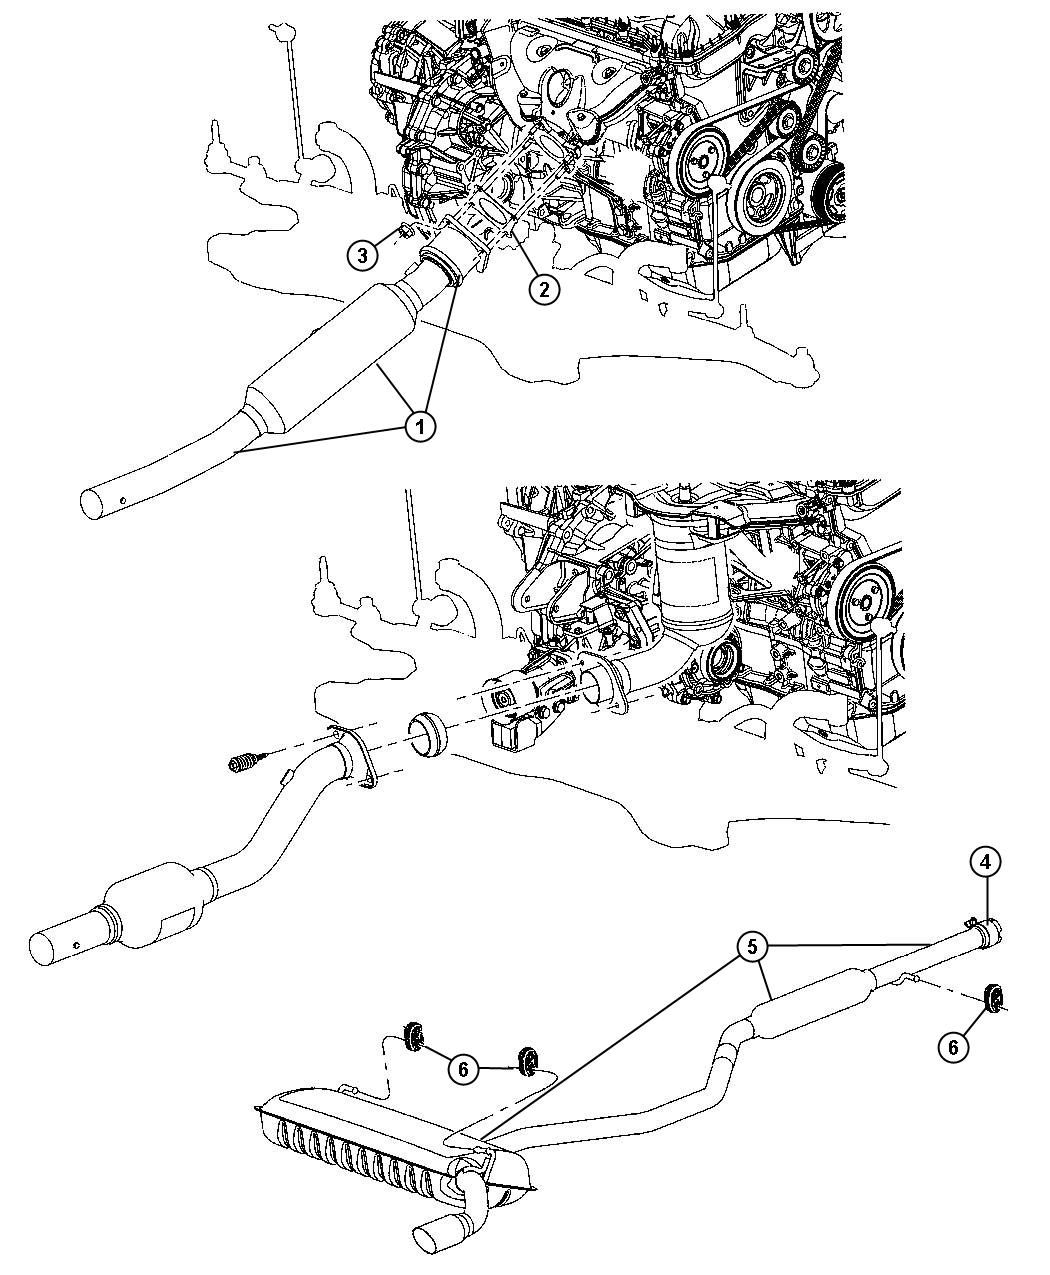 2010 Jeep Compass Converter. Catalytic, exhaust. Emissions